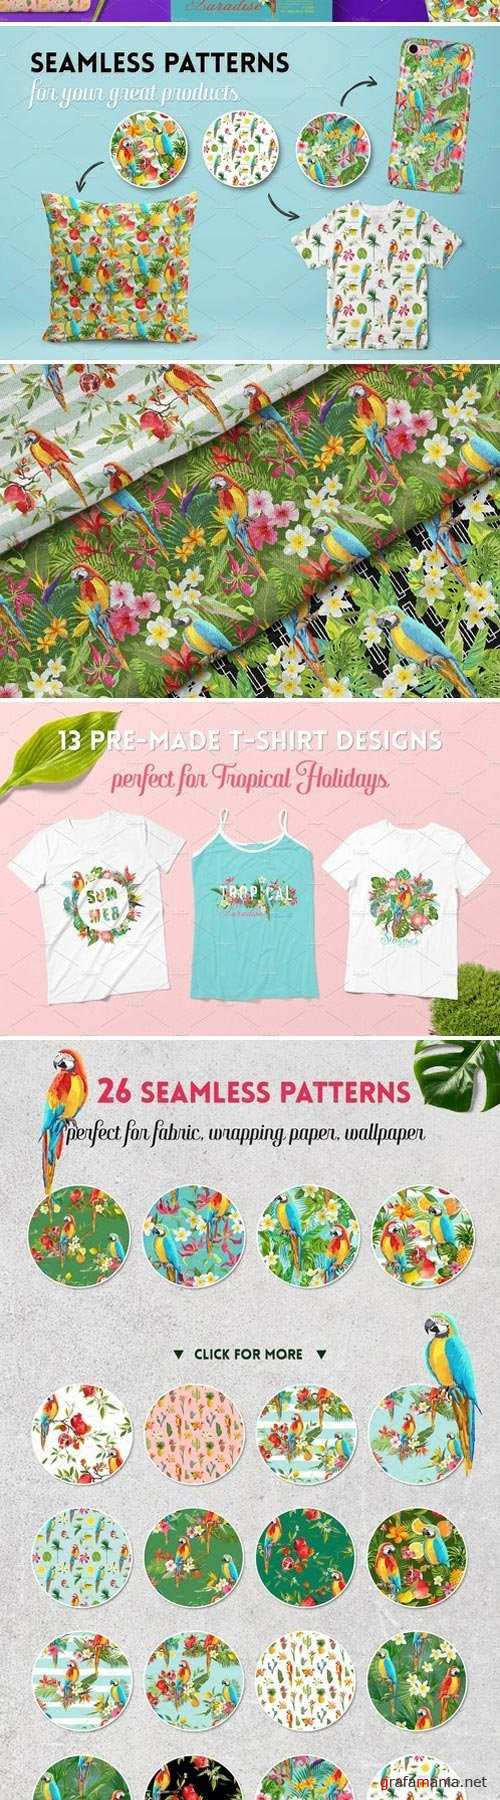 Parrots Tropical Patterns, T-shirts 2400486